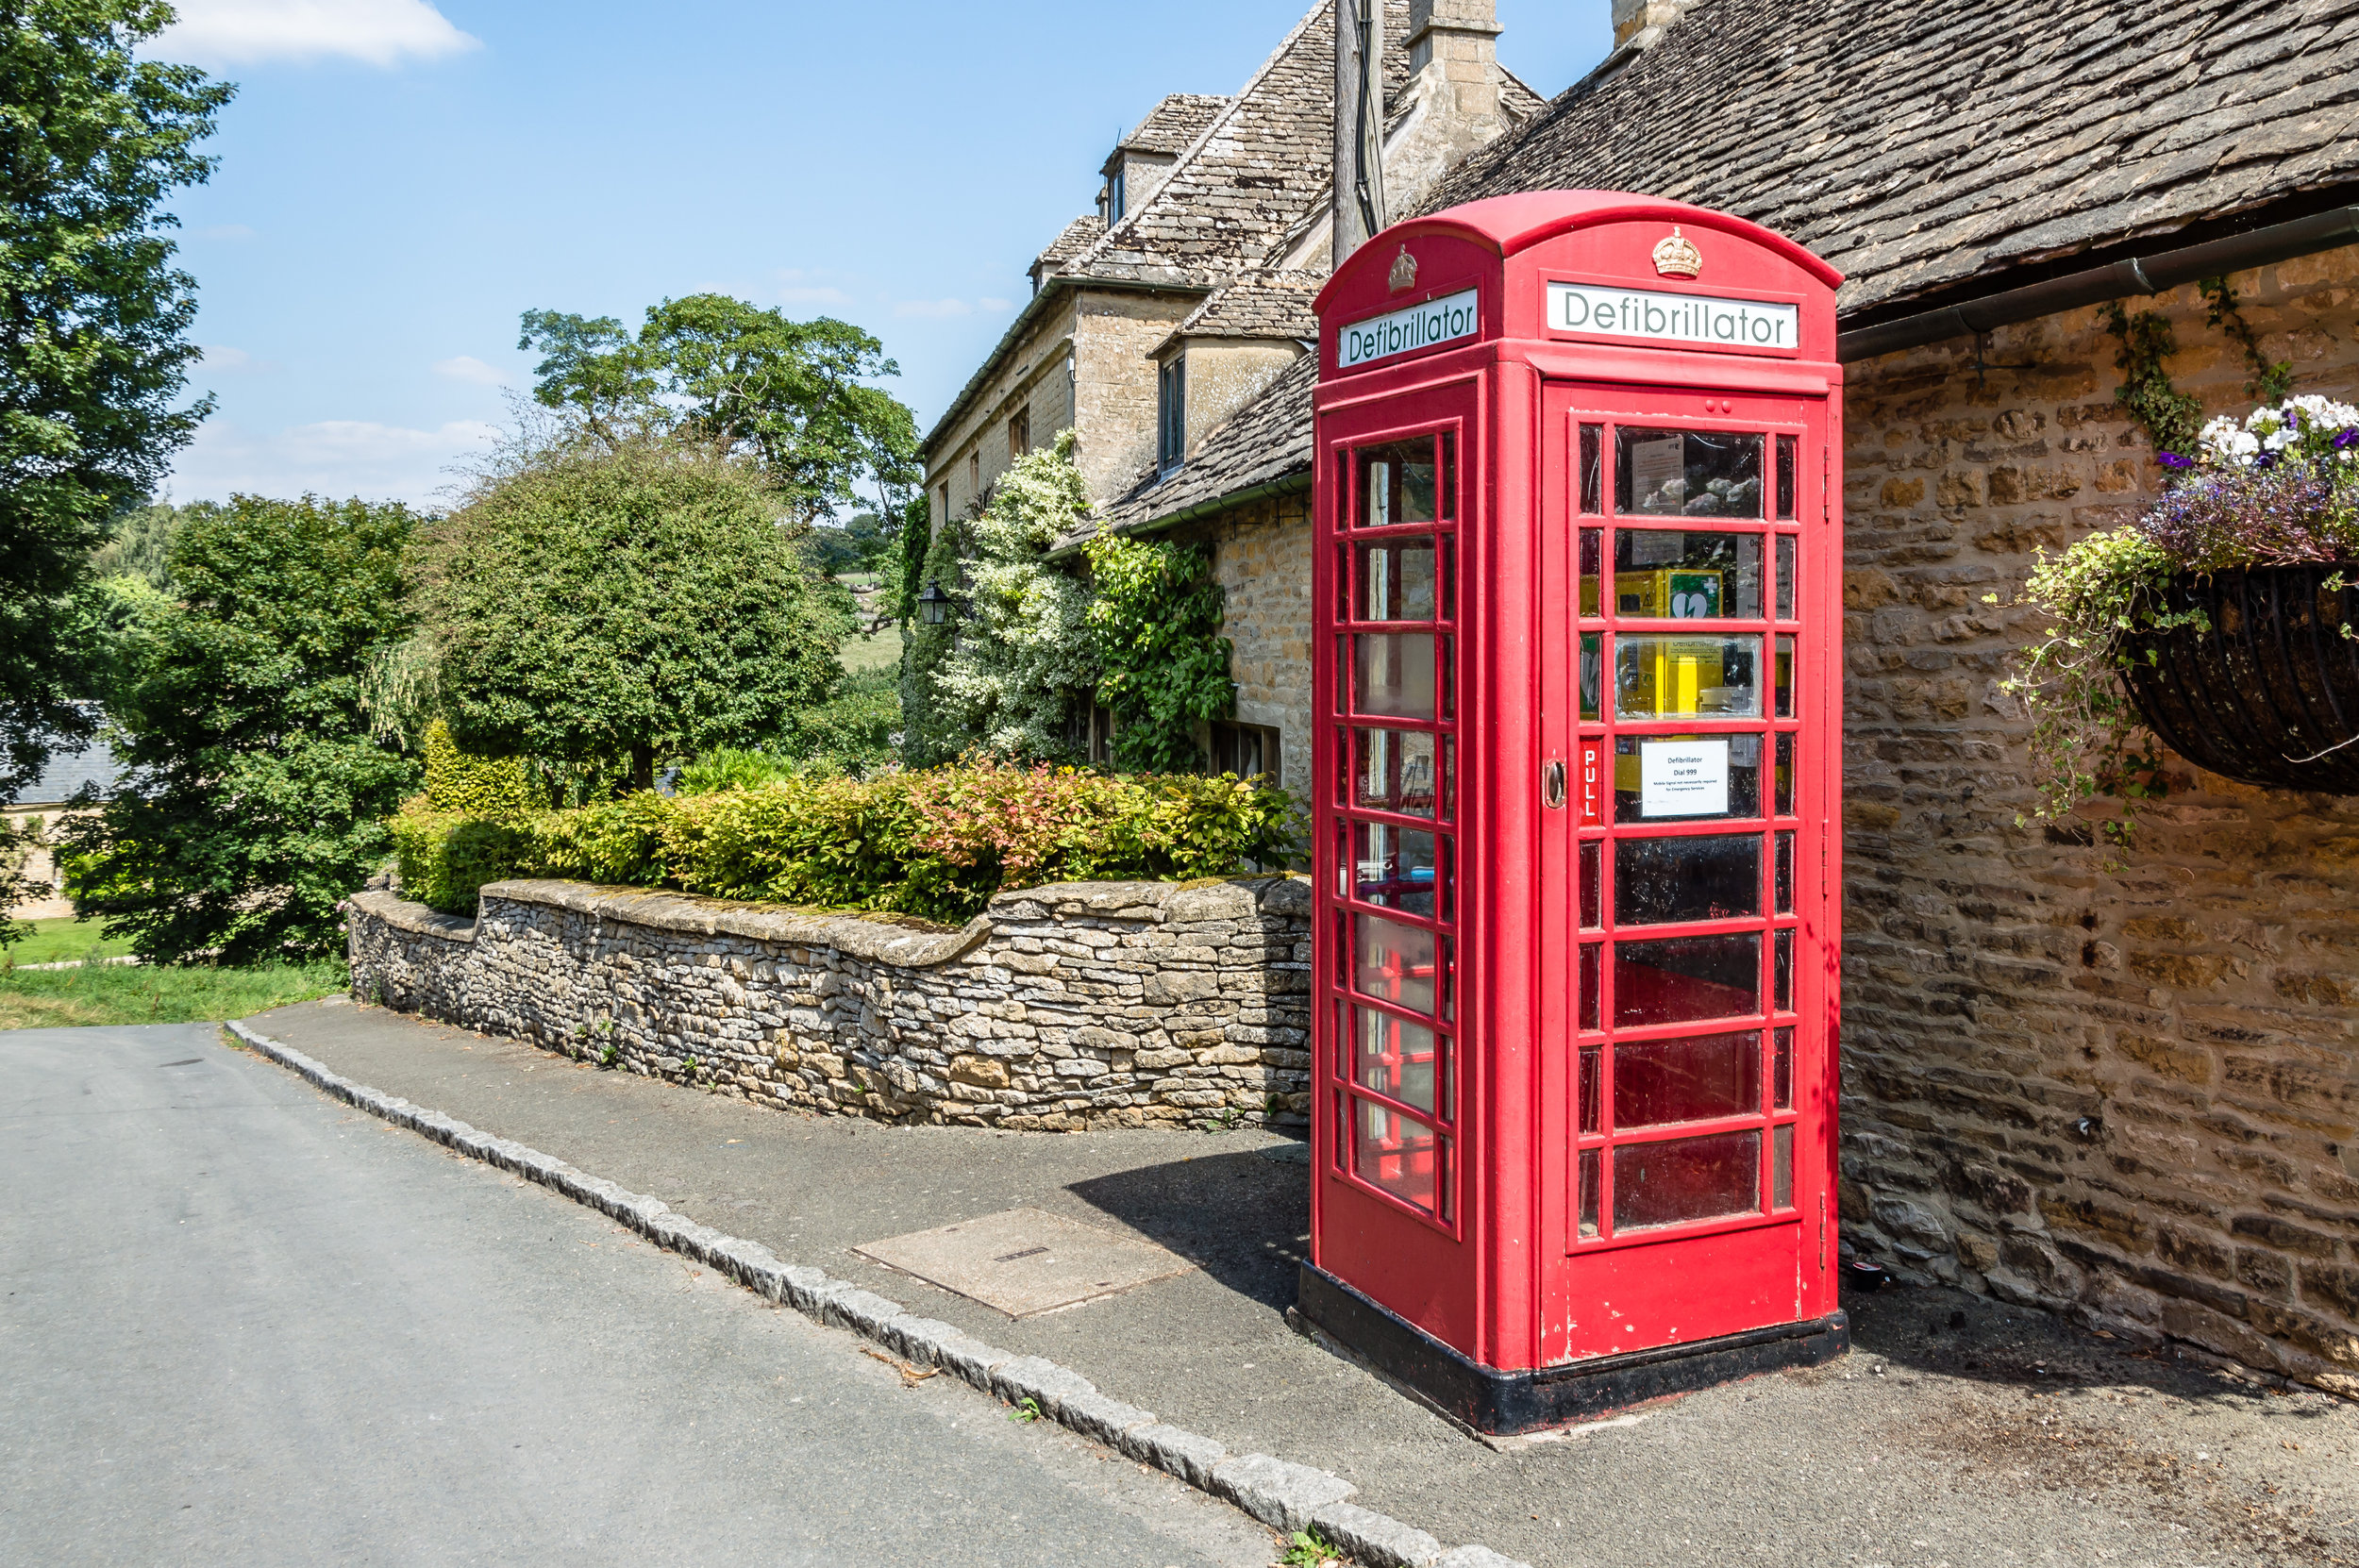 Some phone boxes have found a new life providing life-saving AEDs